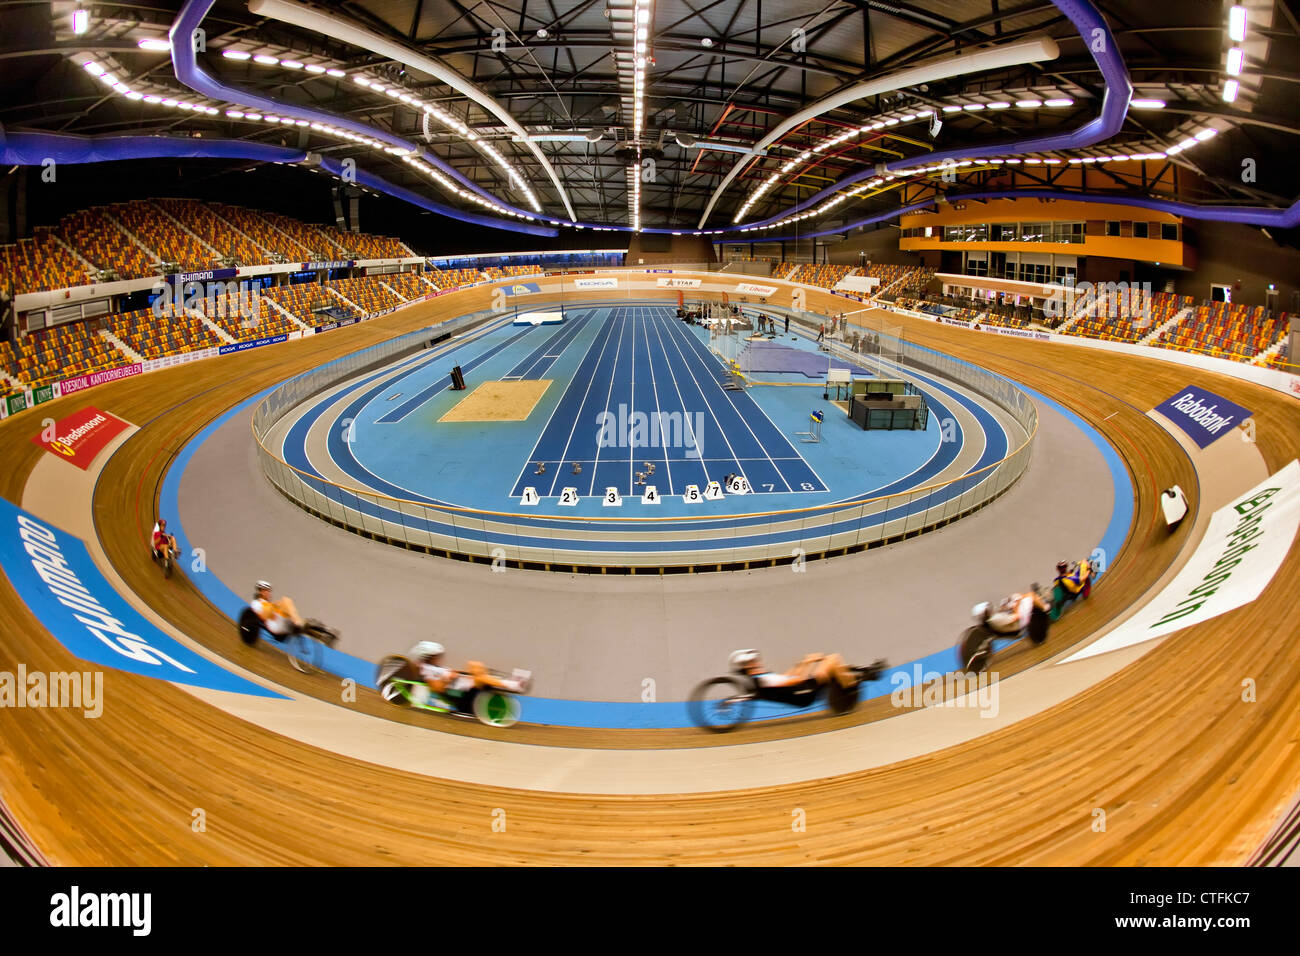 The Netherlands, Apeldoorn, Cycle stadium called Omnisport. Recumbent bicycles. - Stock Image